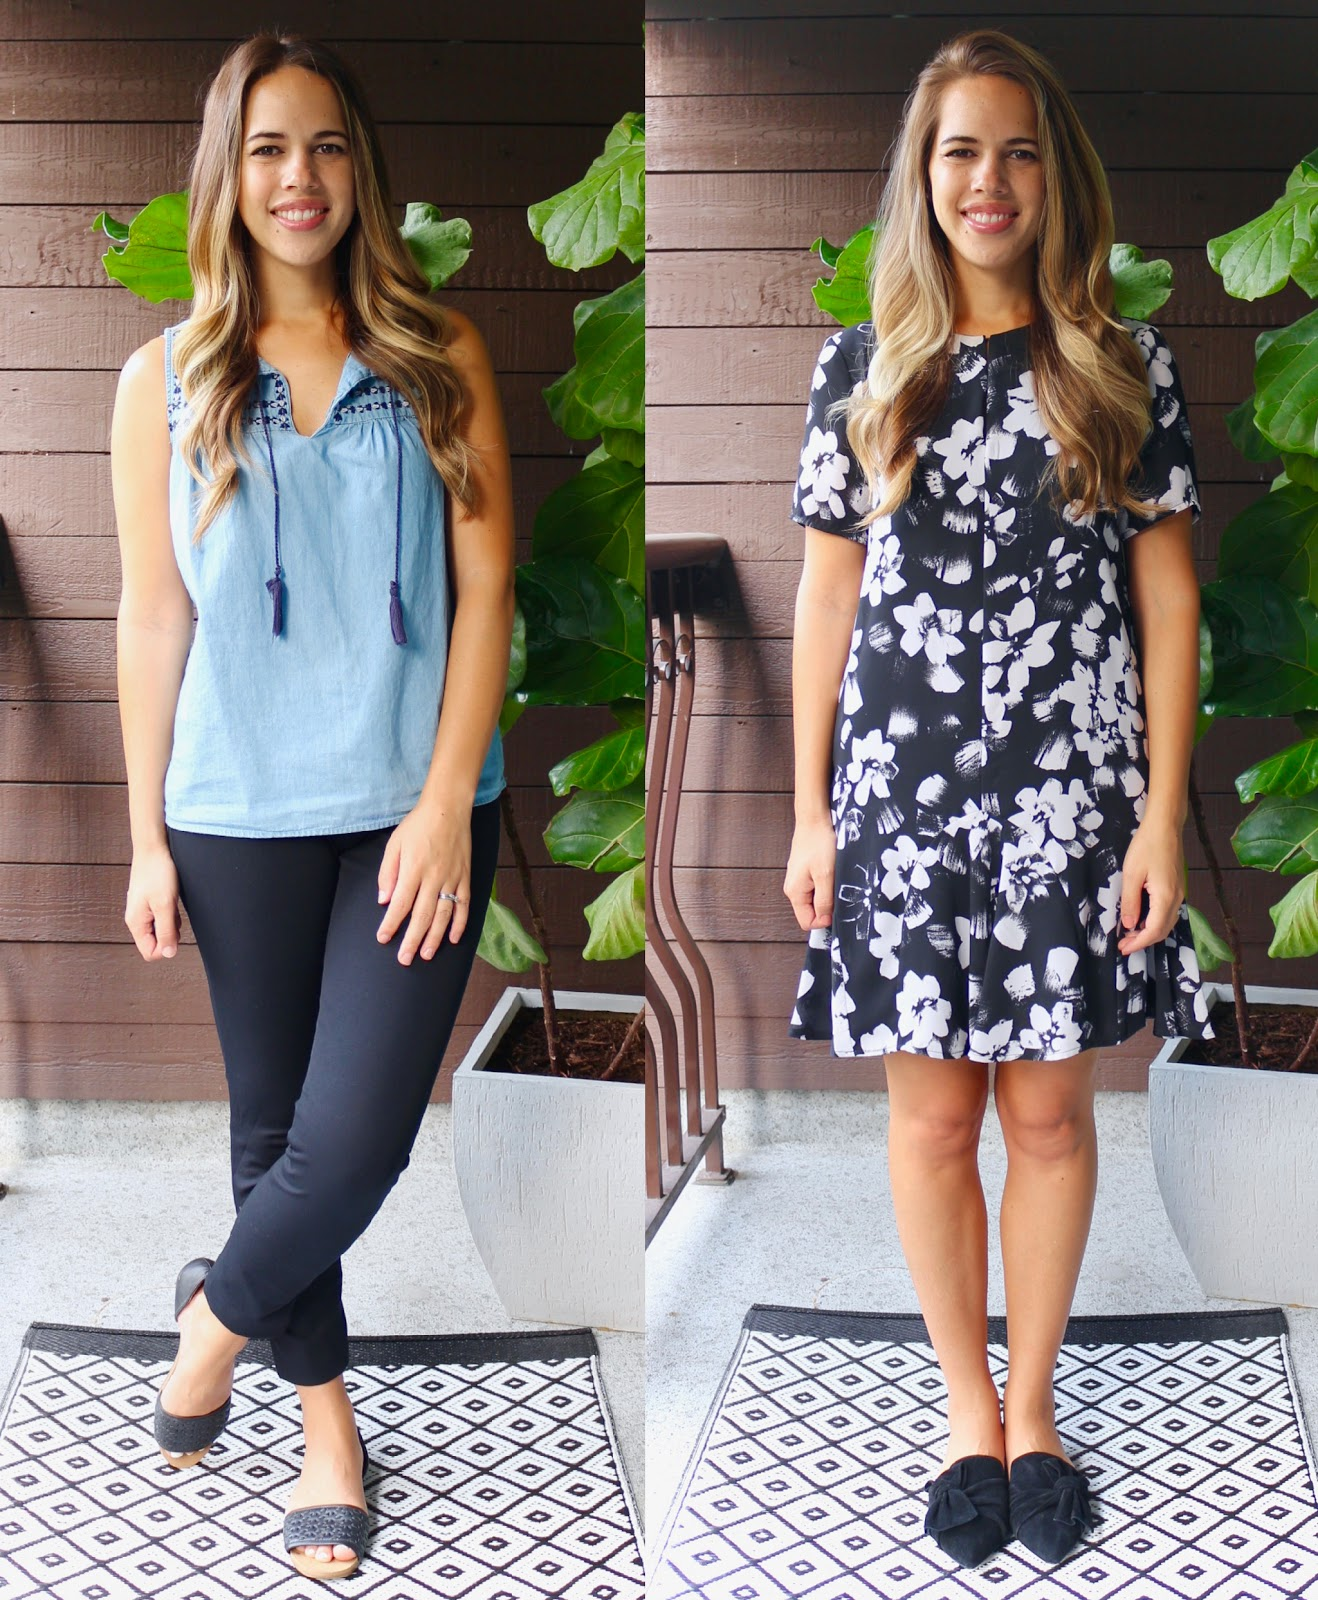 Jules in Flats August Outfits (Business Casual Summer Workwear on a Budget)